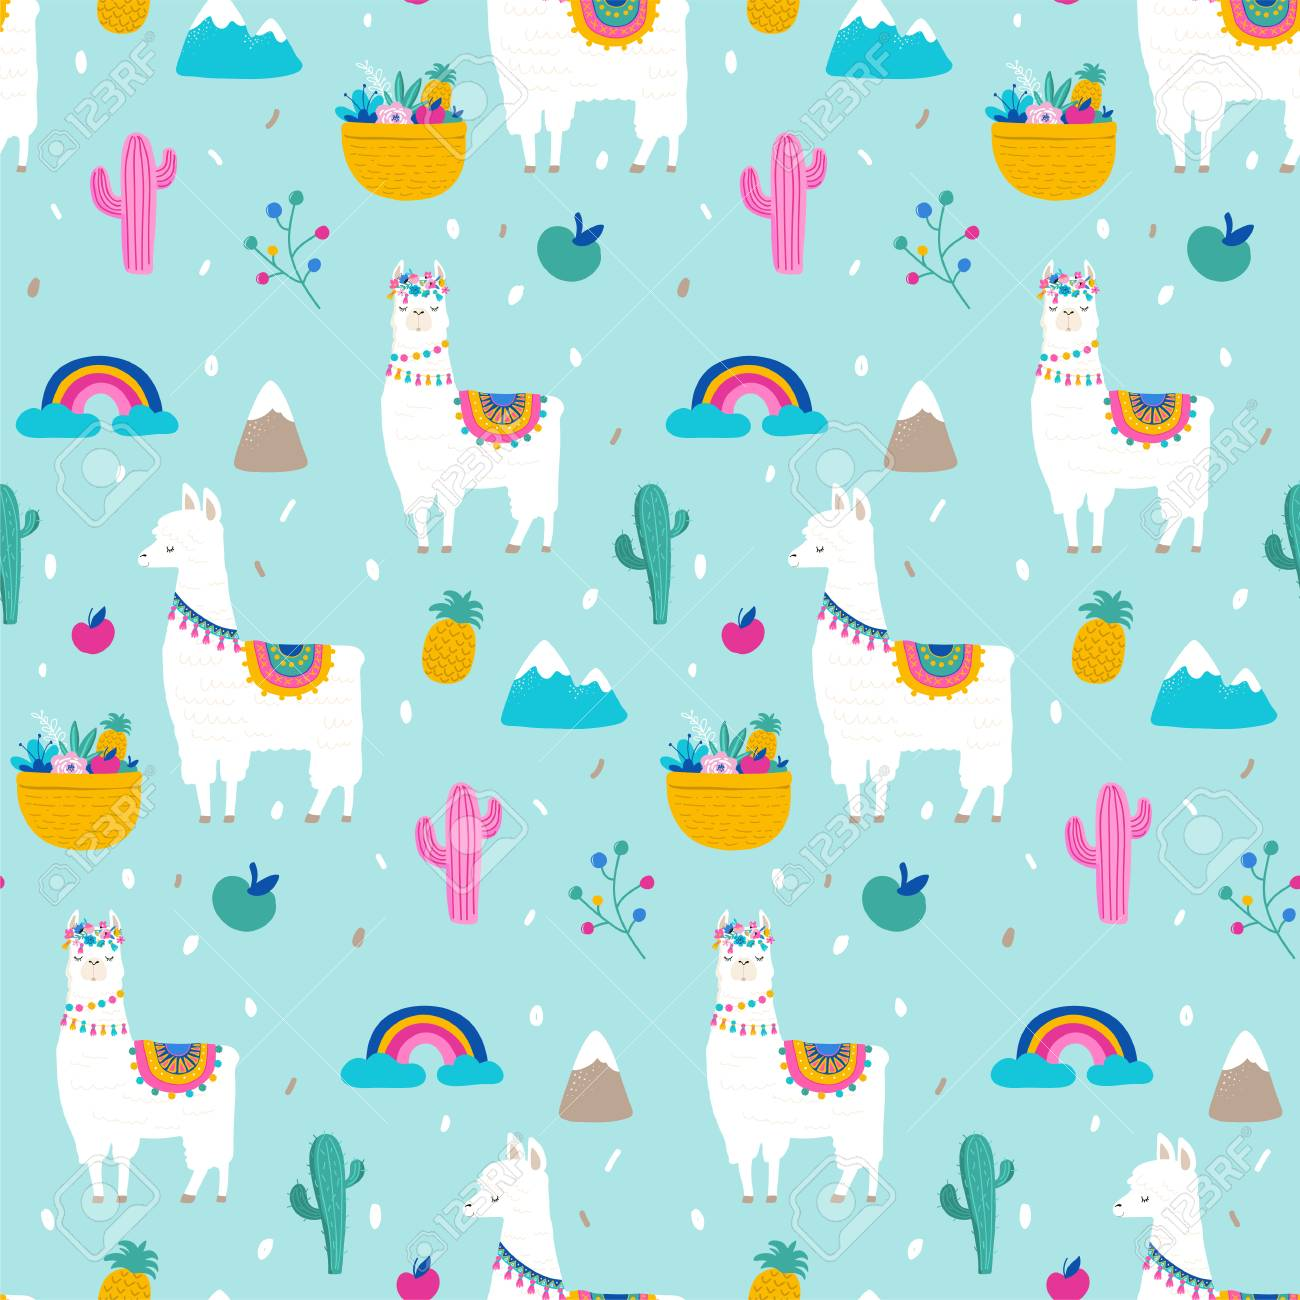 Llama Alpaca Cactuses And Leaves Seamless Pattern Background 1300x1300